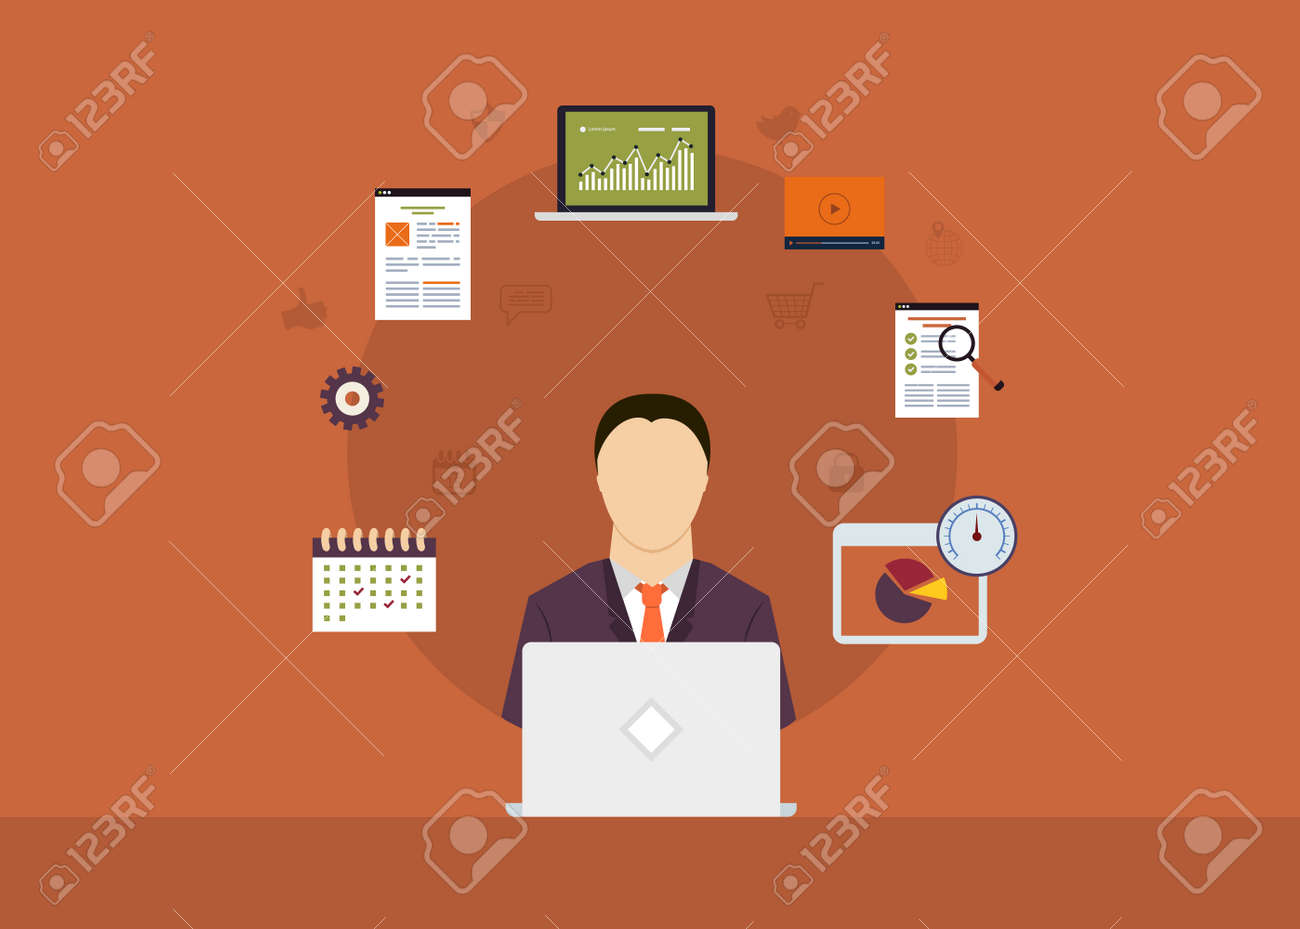 Concept Of Consulting Services Project Management Time  Concept Of Consulting Services Project Management Time Management Marketing Research Strategic Plann Stock Vector Photo  Concept Of Consulting Services Project Management Time Management Marketing Research Strategic Plann